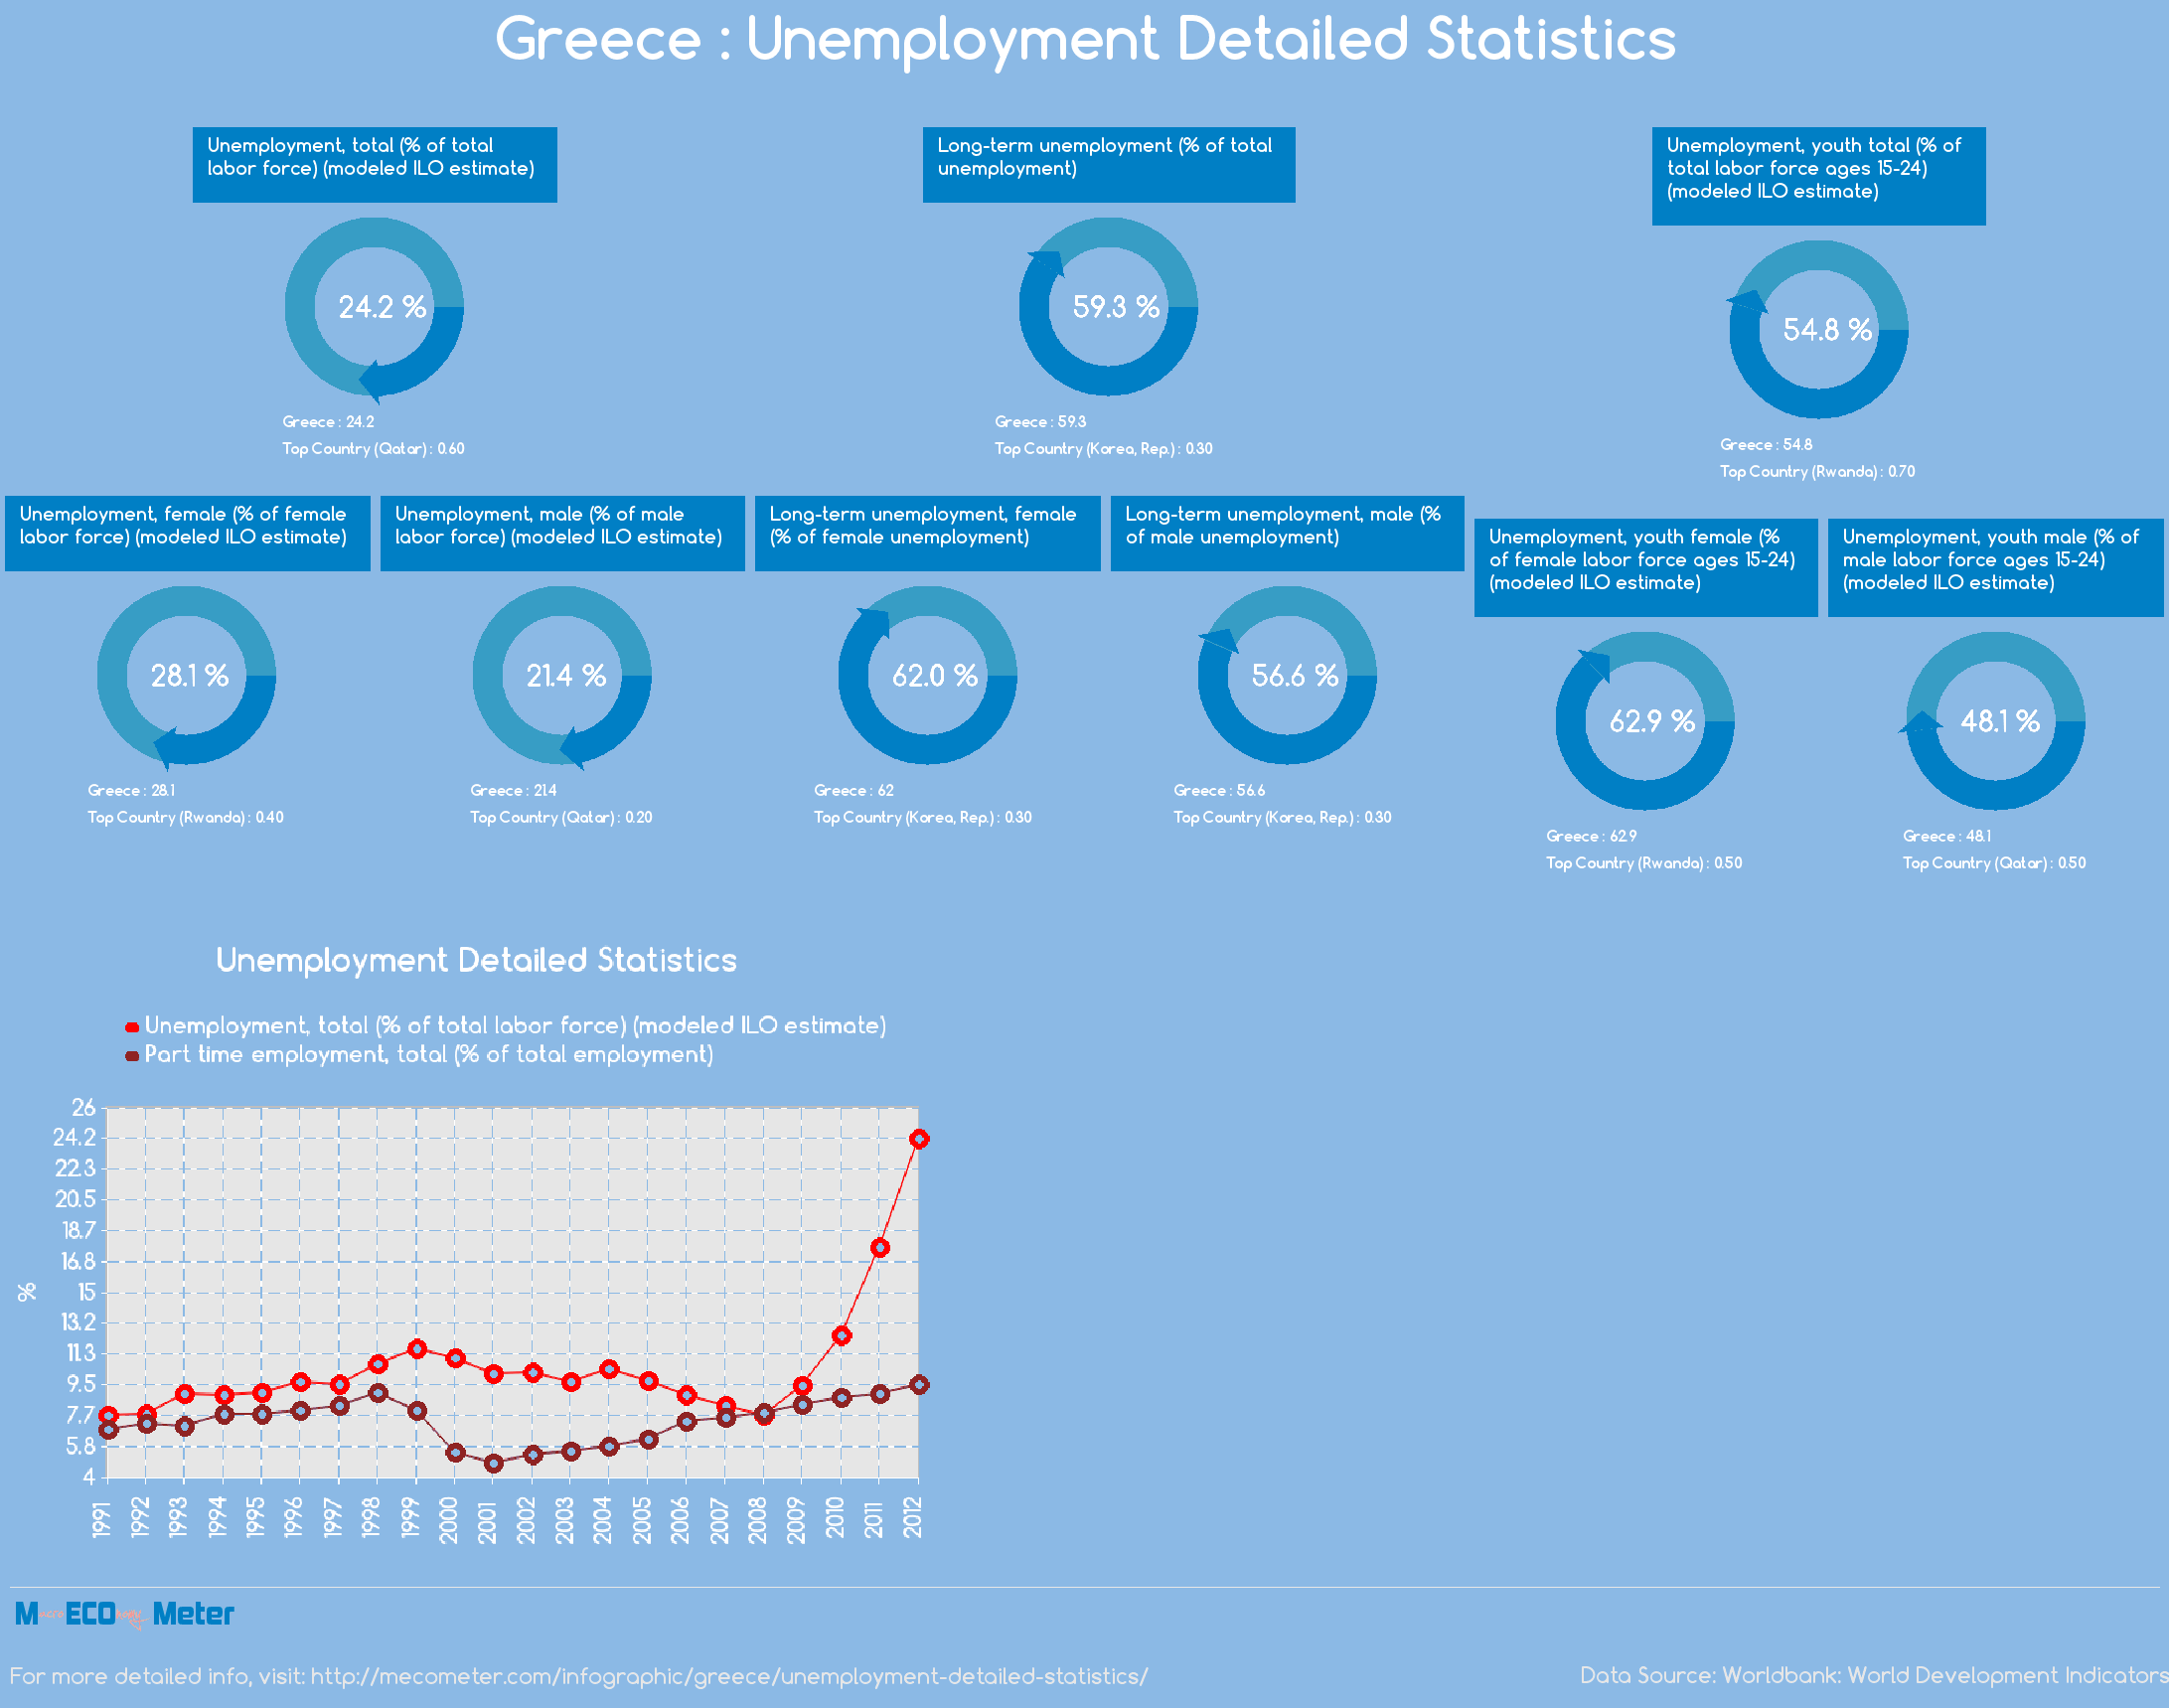 Greece : Unemployment Detailed Statistics